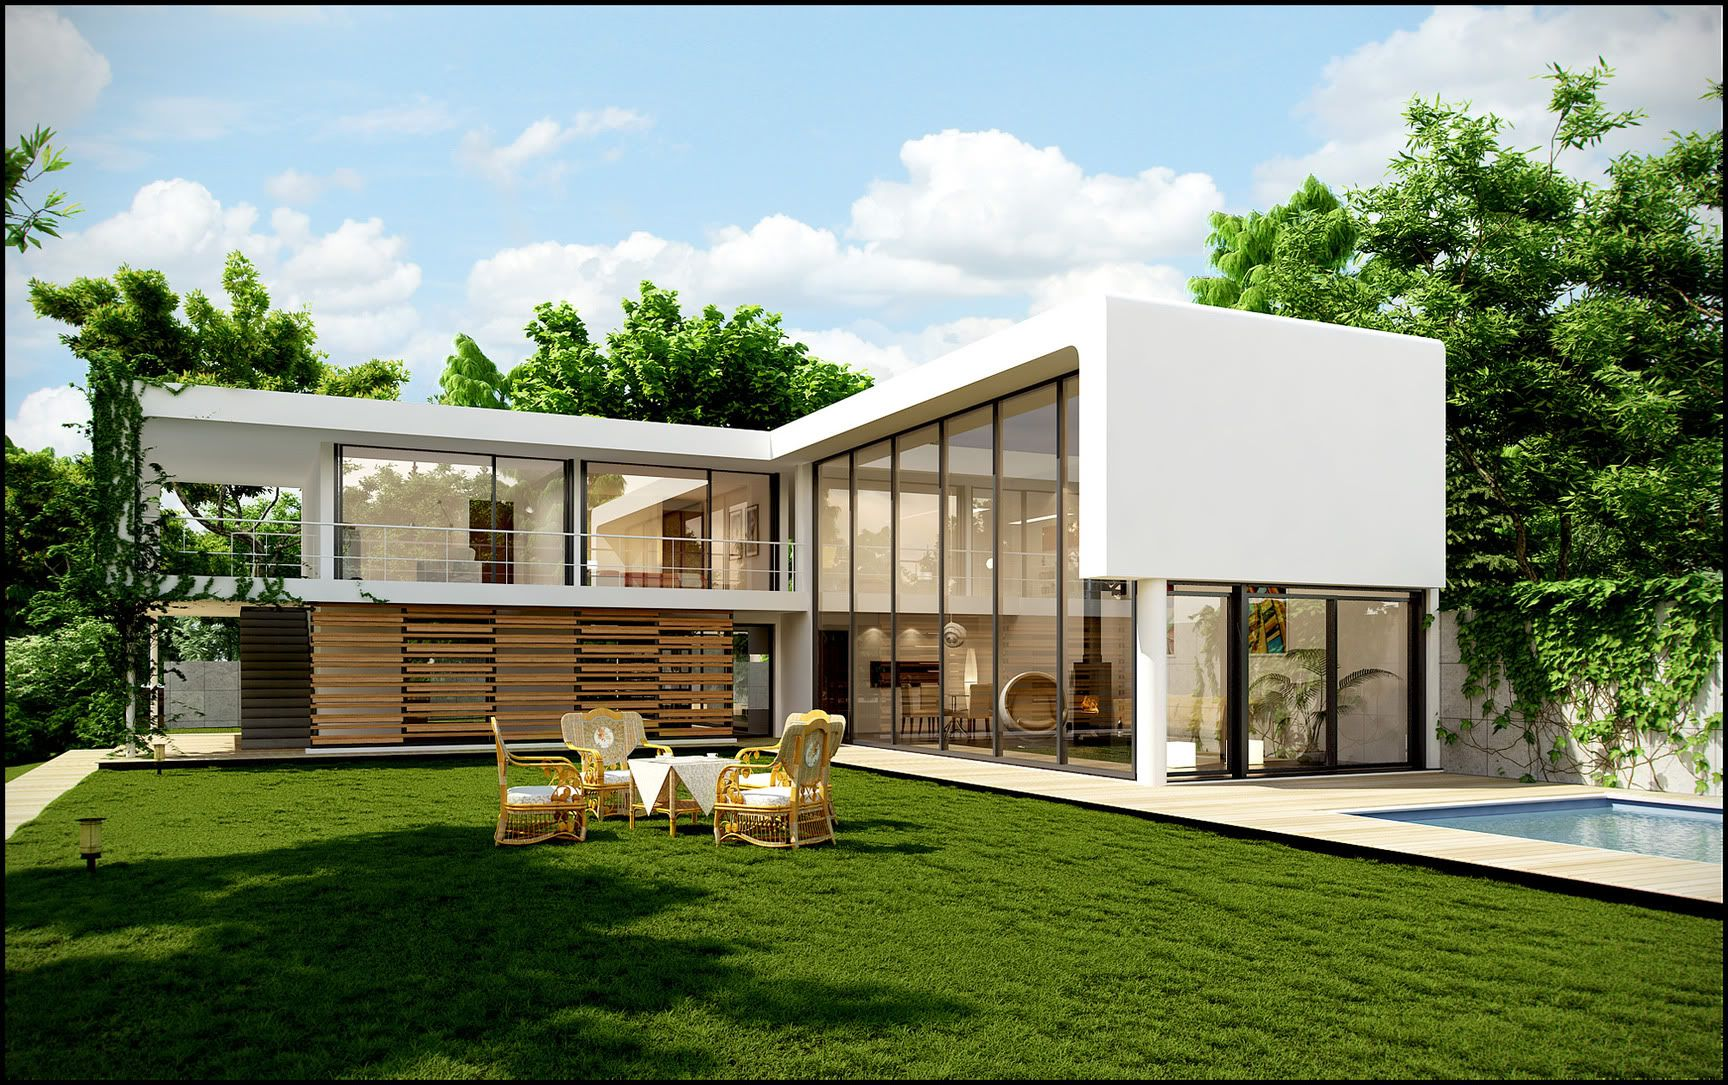 Architecture exterior impressive l shape small modern for Small modern home designs